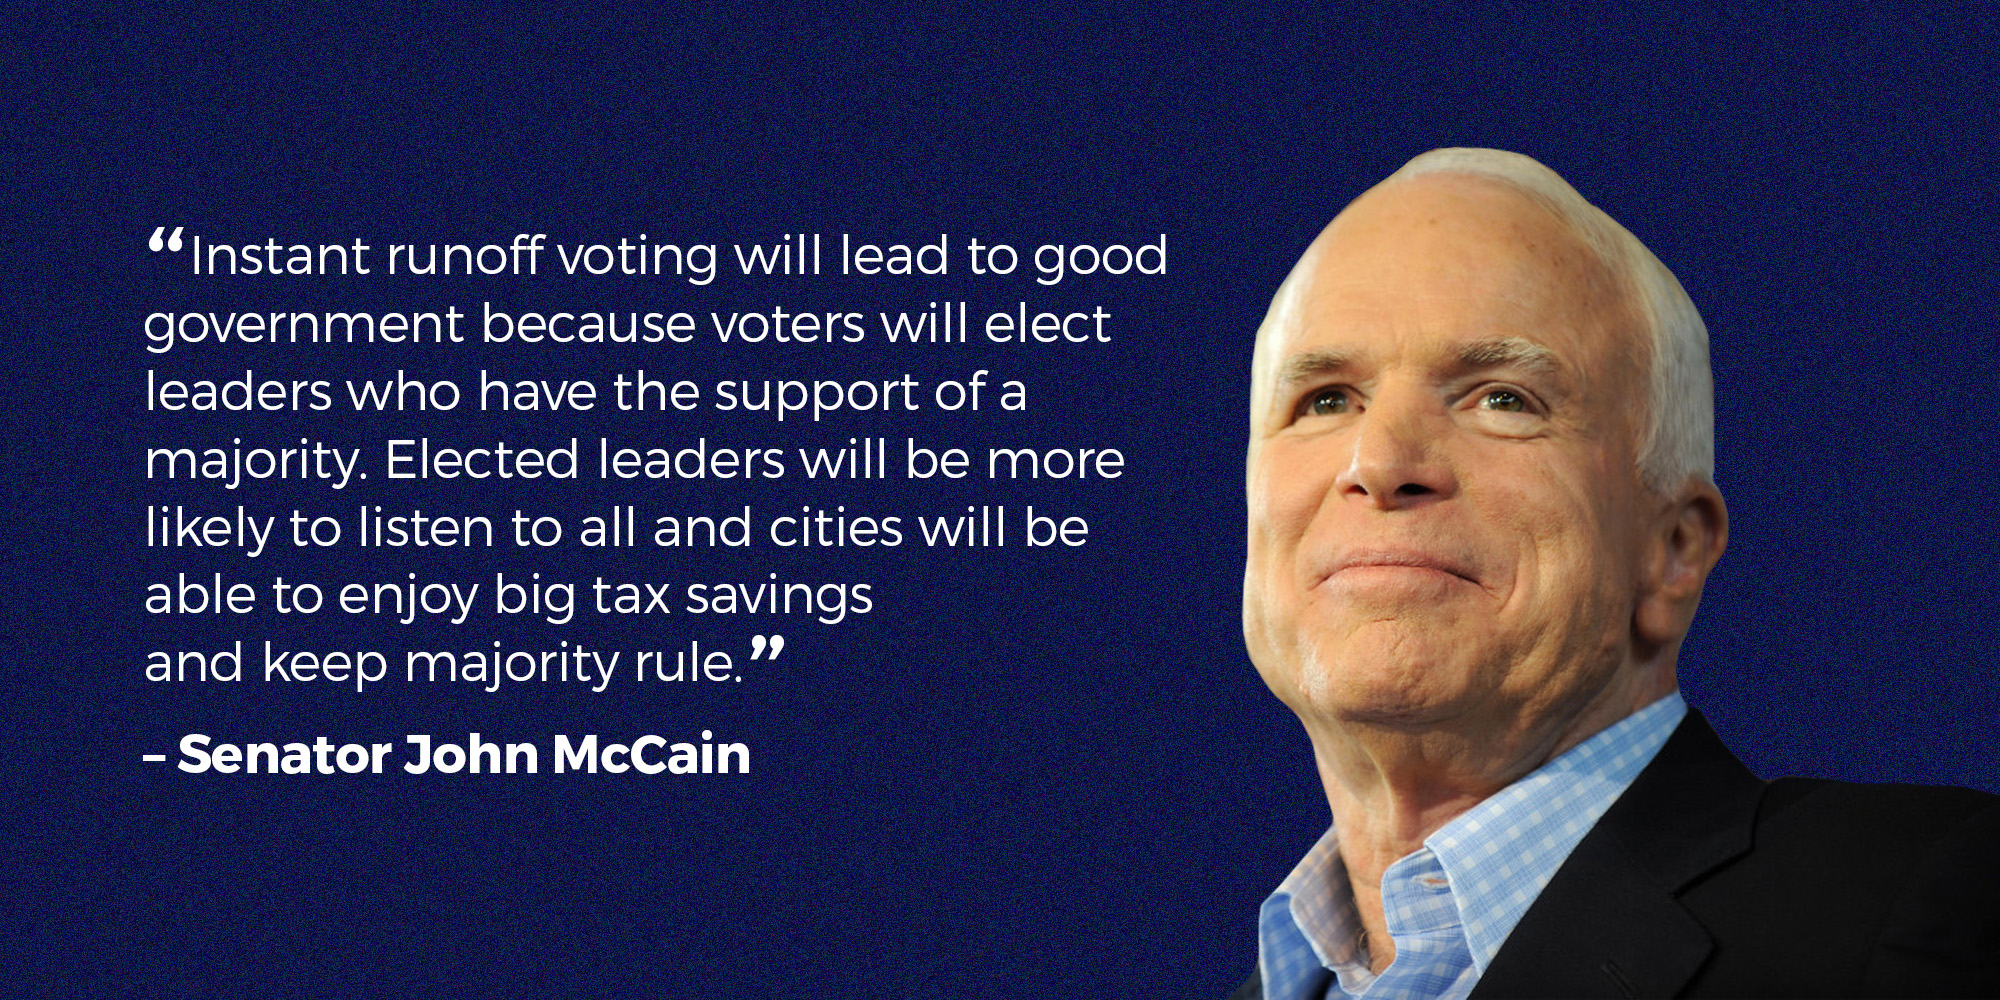 John McCain understood how ranked choice voting strengthens our democracy